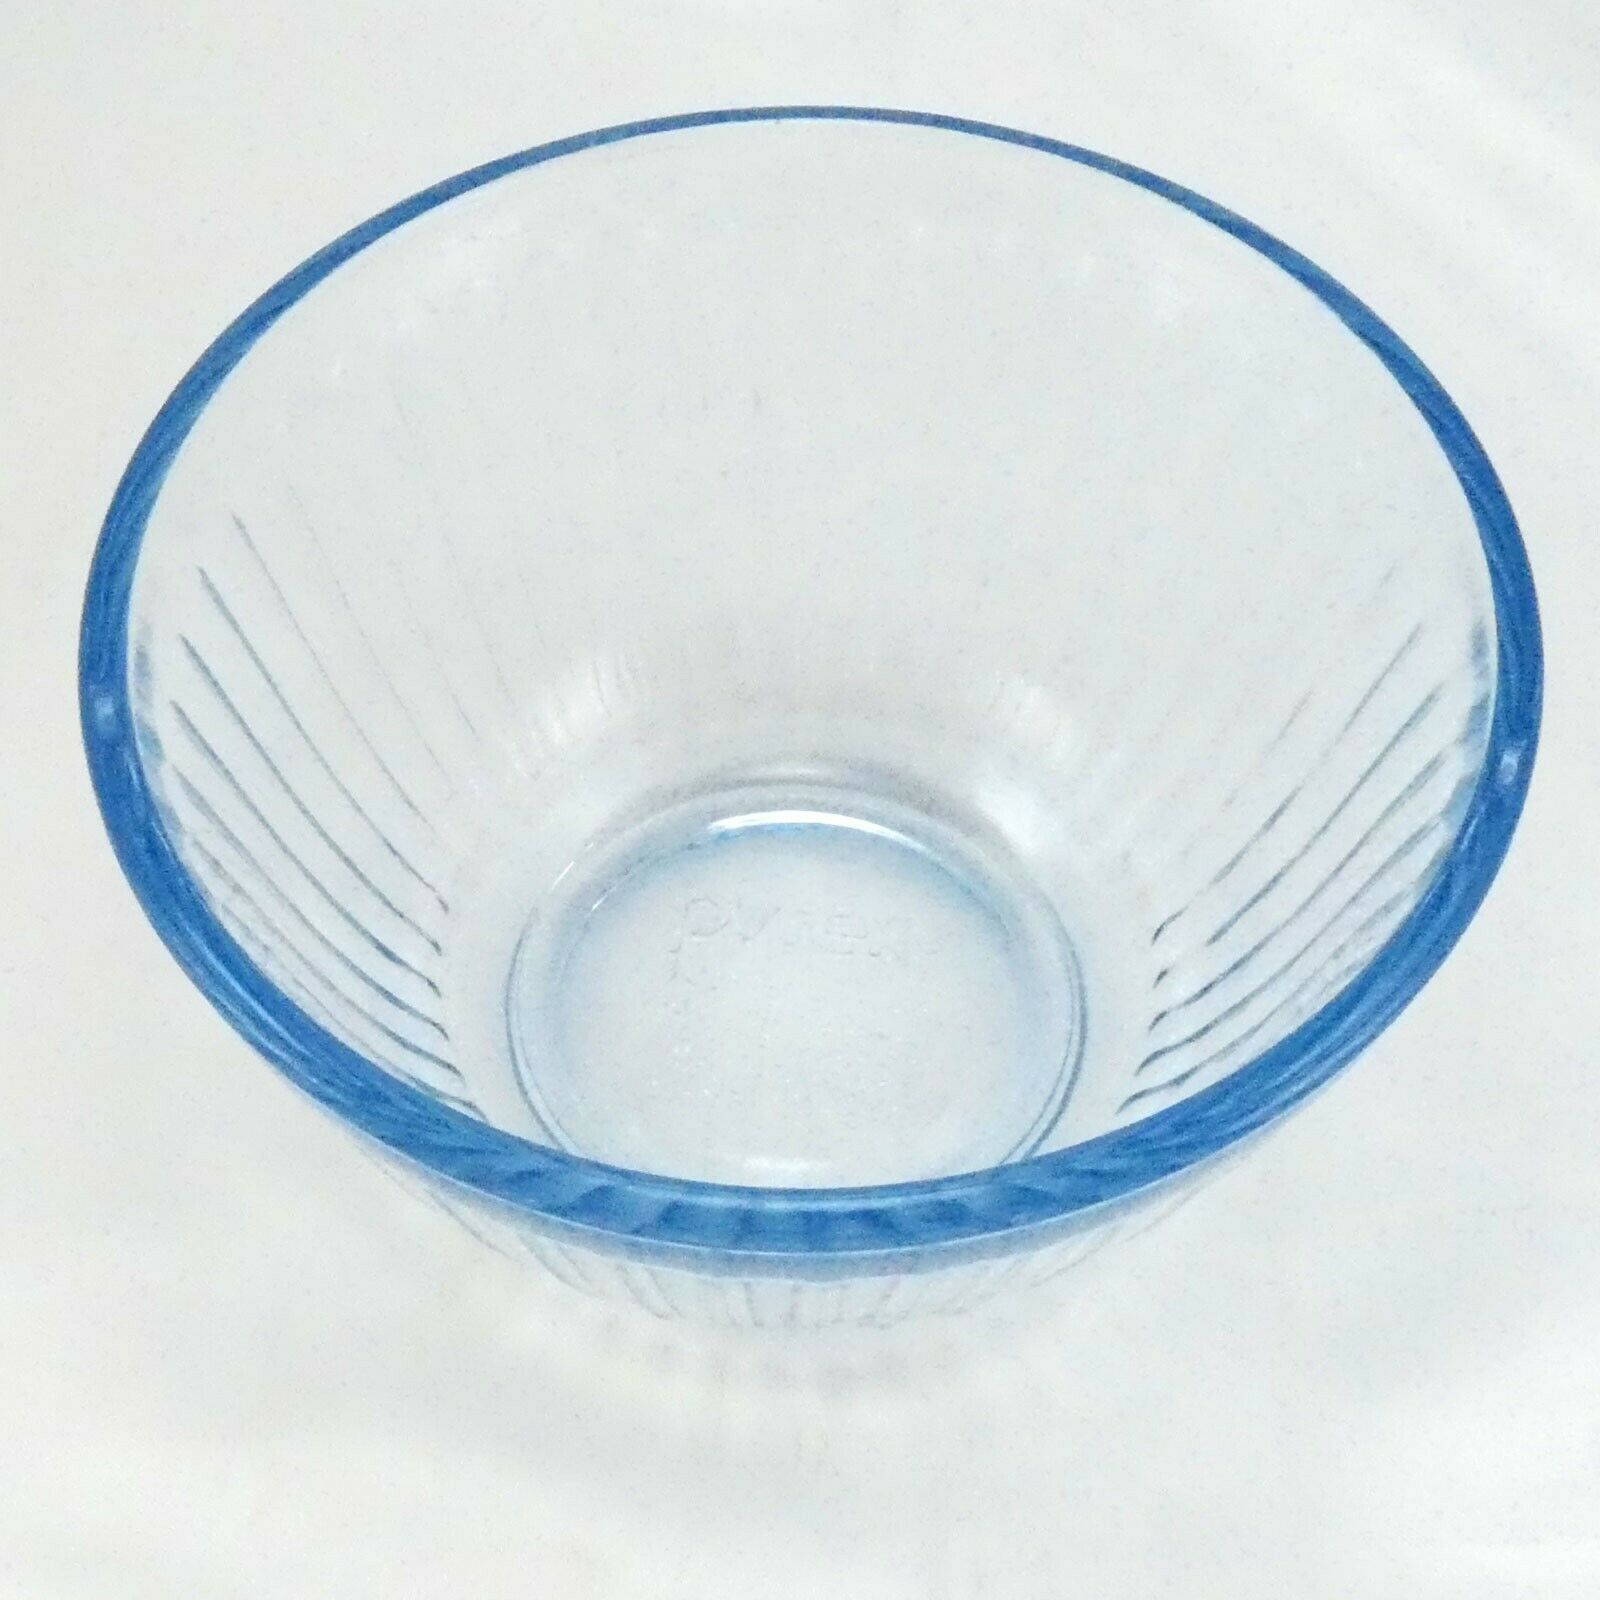 Pyrex 7401-S Ribbed Side Blue Aqua Tint Glass Serving Bowl 3 Cup image 2